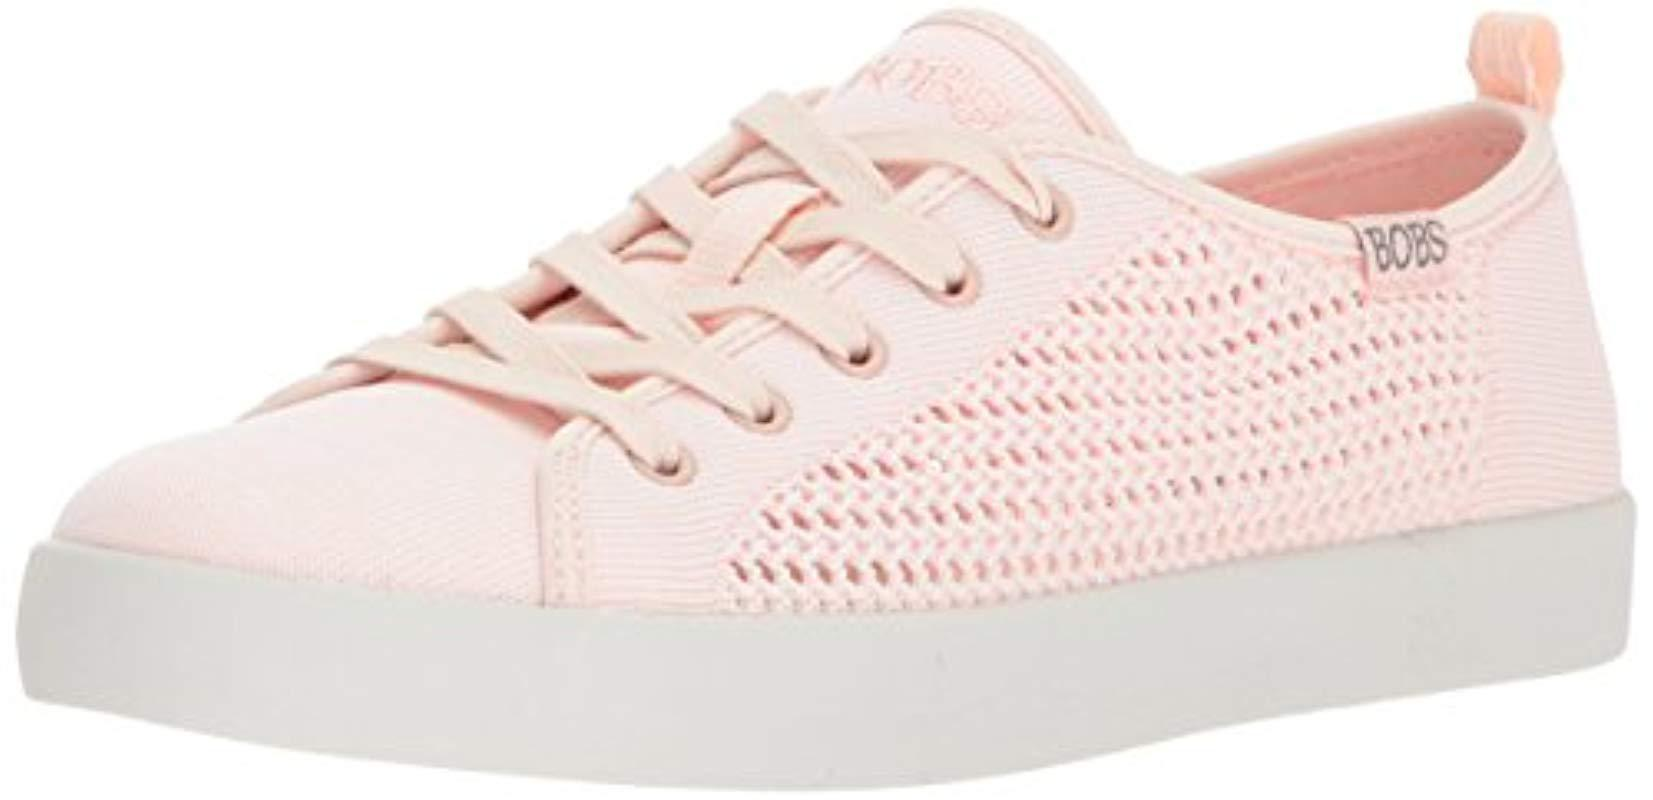 0a5fa671c4e14 Skechers Bobs B-loved-spring Blossom Trainers in Pink - Lyst